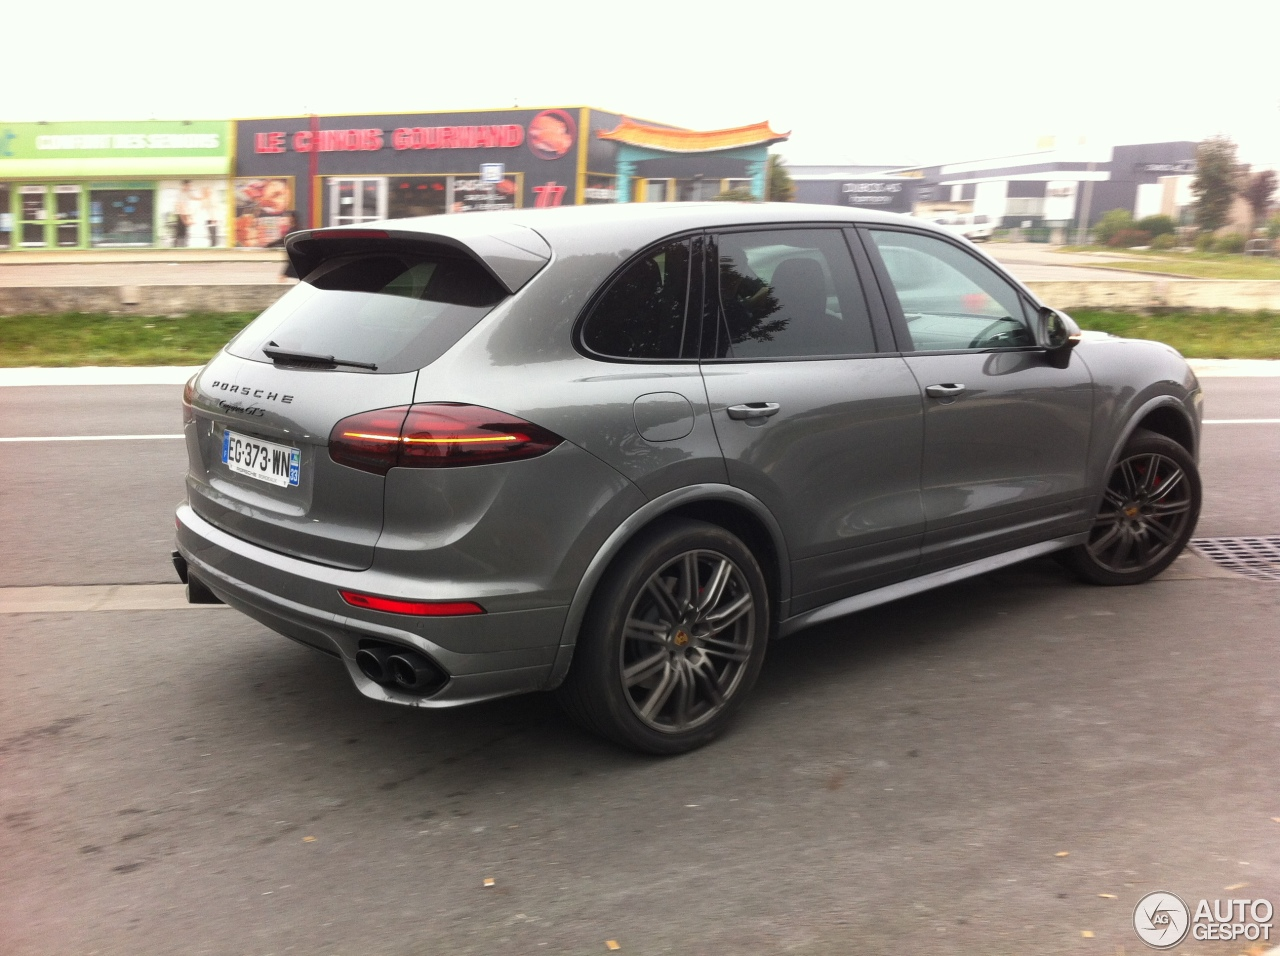 porsche 958 cayenne gts mkii 14 october 2017 autogespot. Black Bedroom Furniture Sets. Home Design Ideas